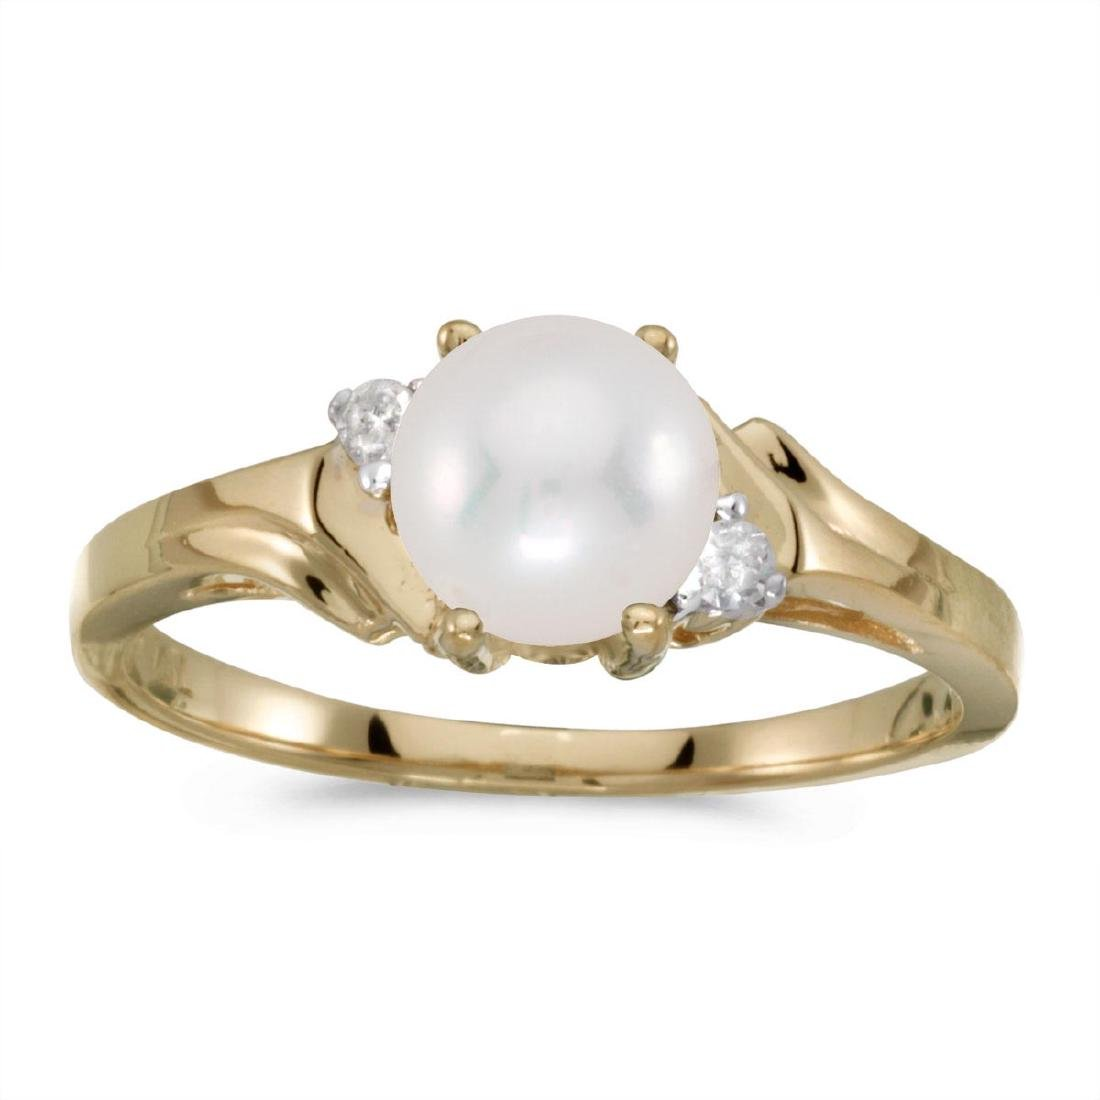 Certified 14k Yellow Gold Pearl And Diamond Ring 0.04 C